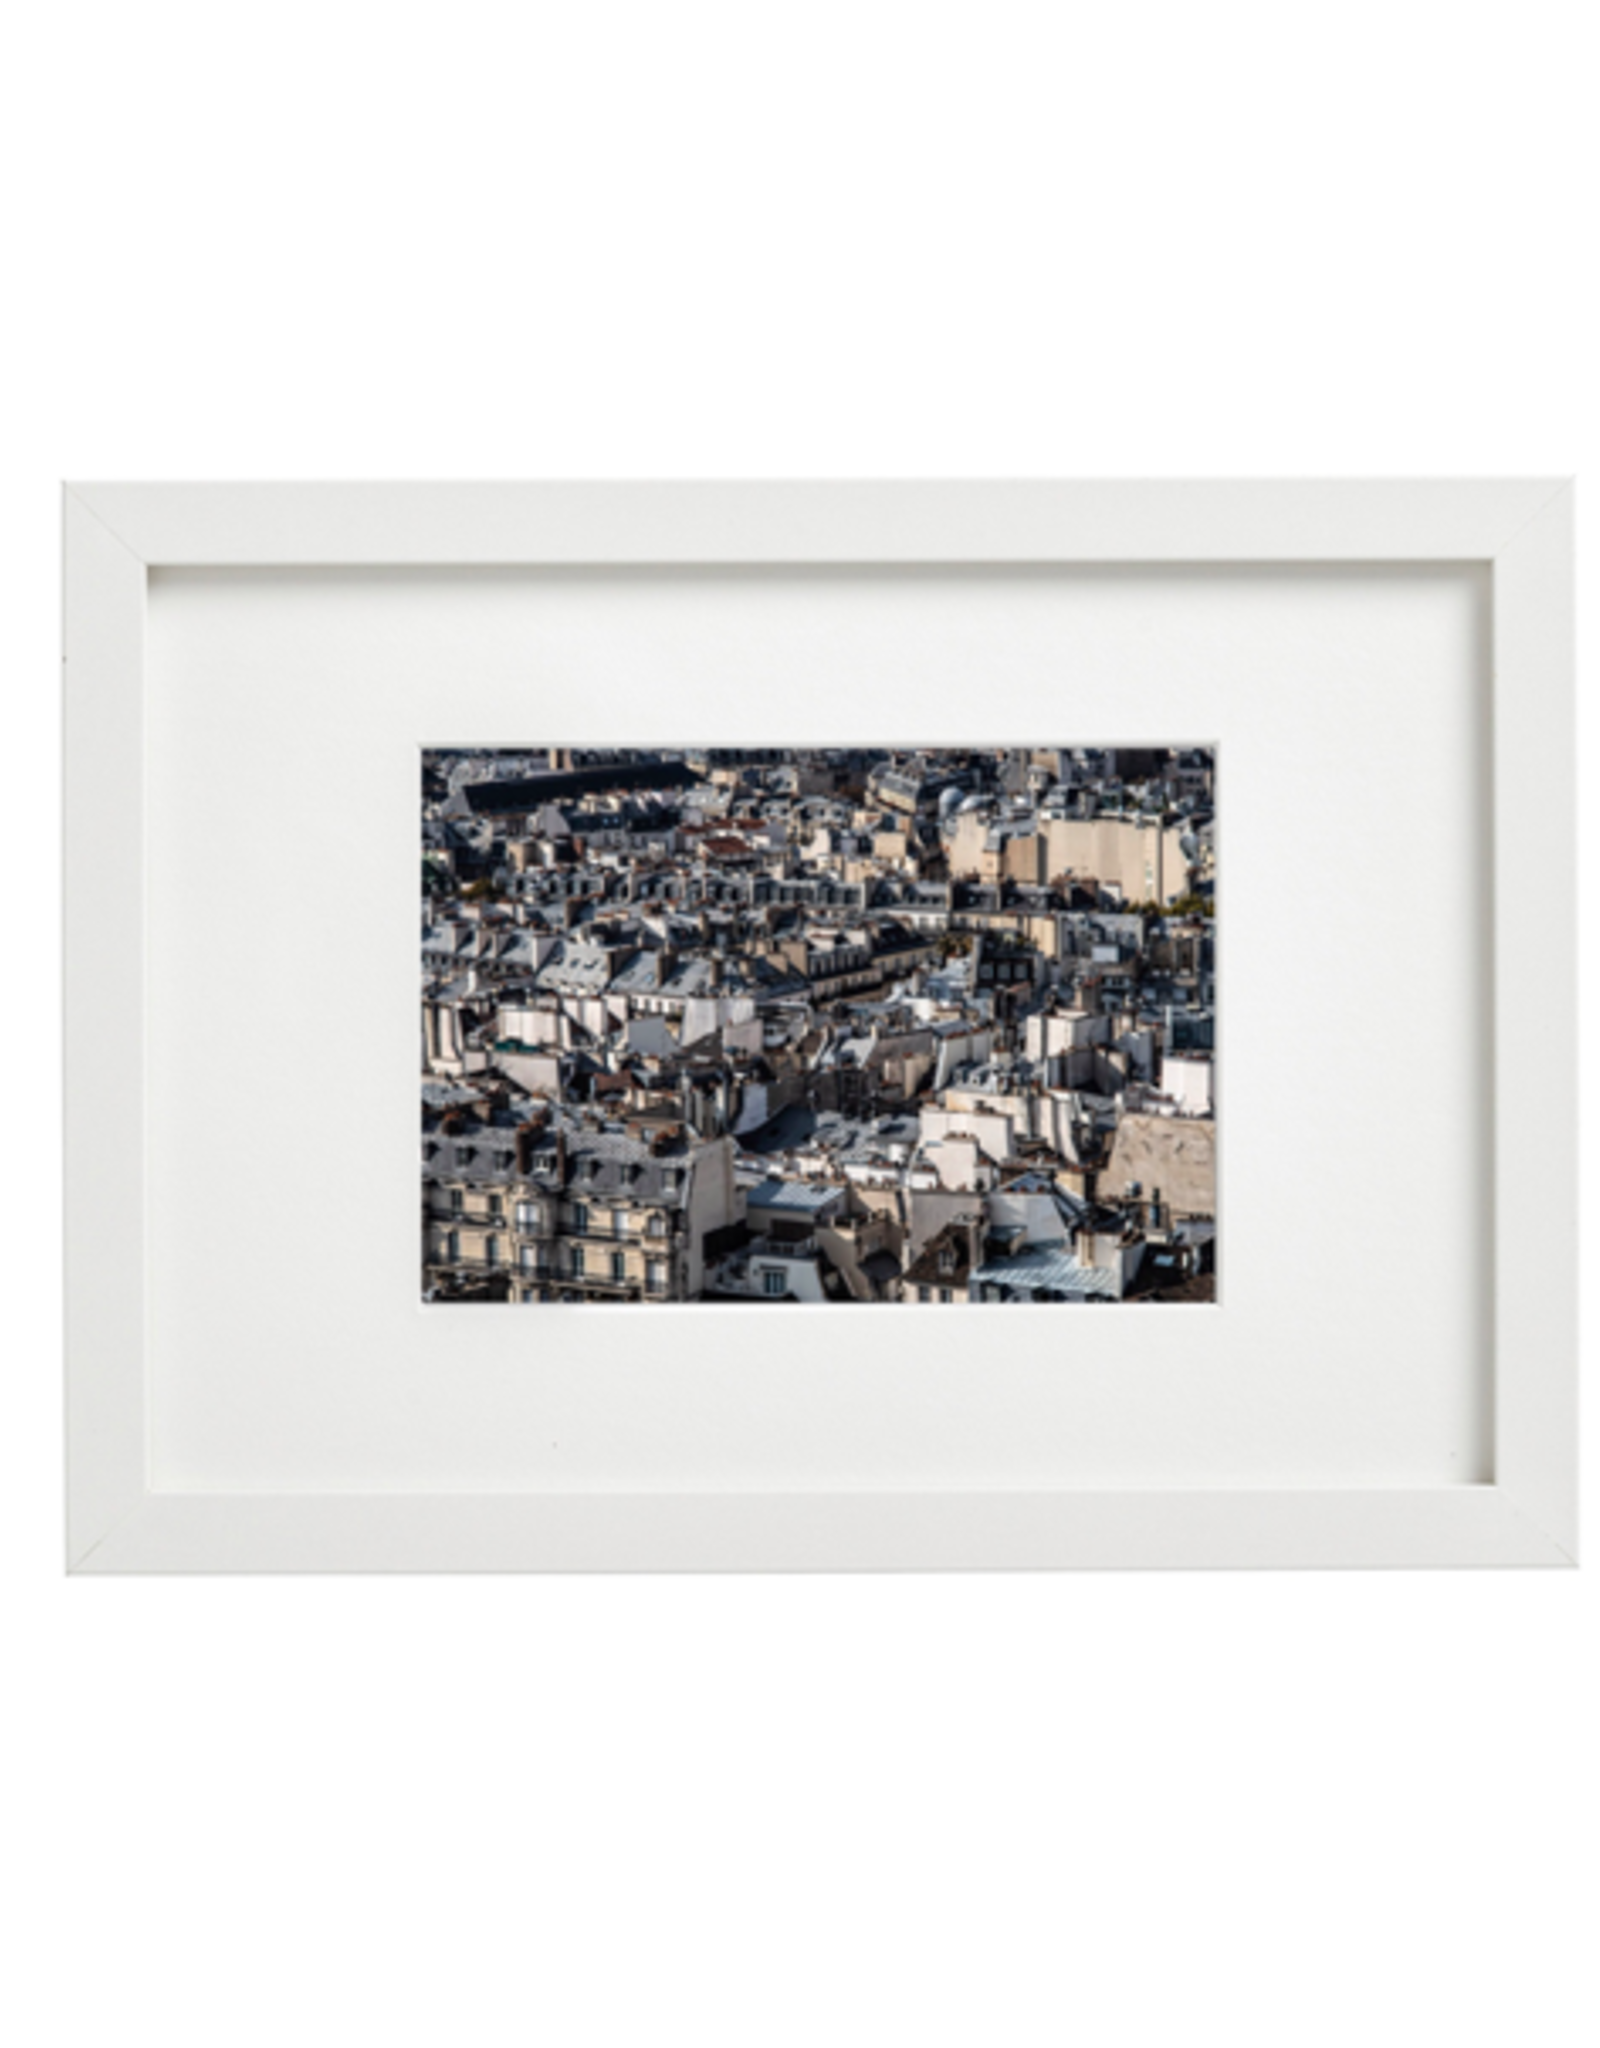 Aleyah Solomon - Photo Print/Paris Rooftops 11 x 14""